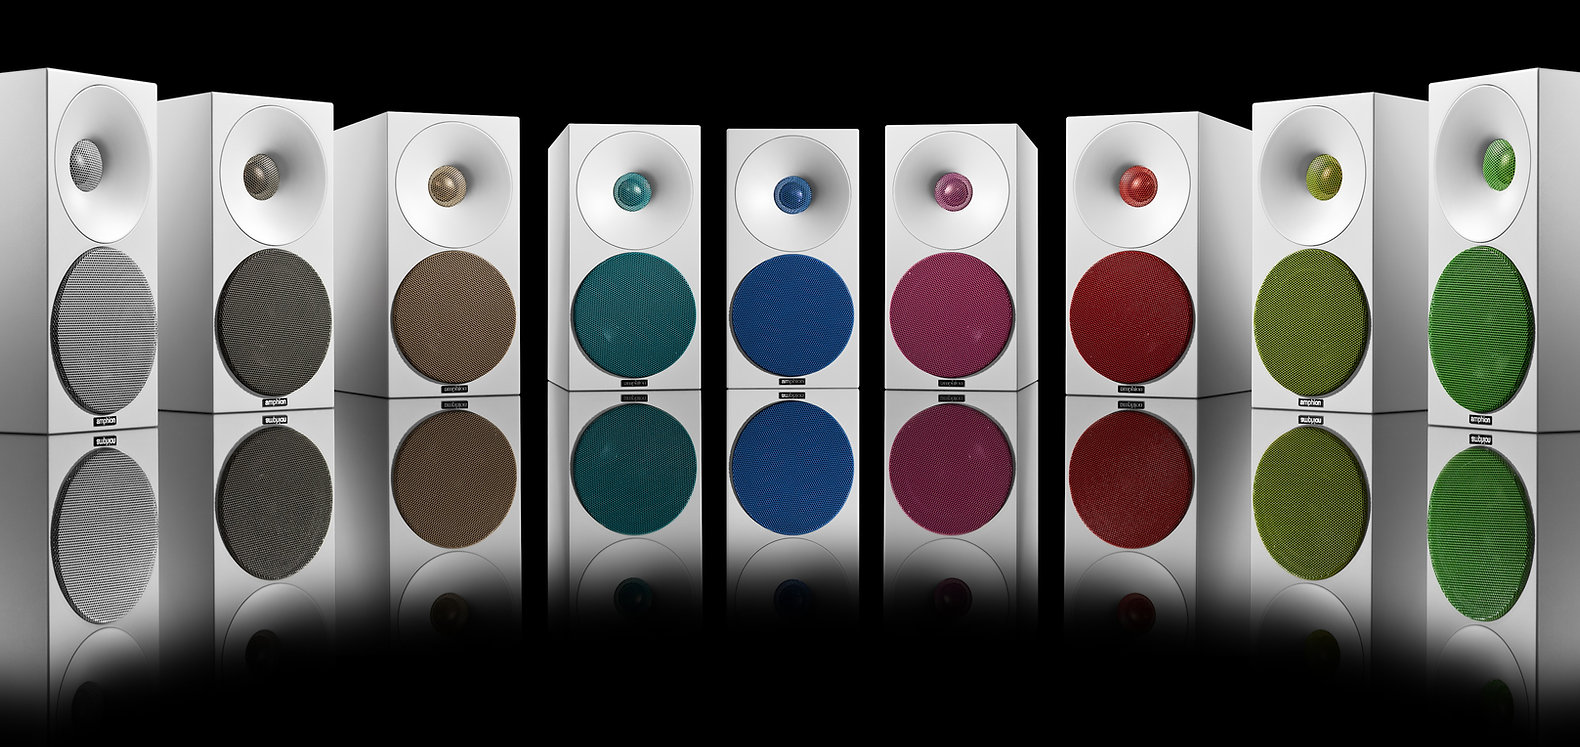 Amphion colour options, Amphion Argon 0 speakers, the little audio company,